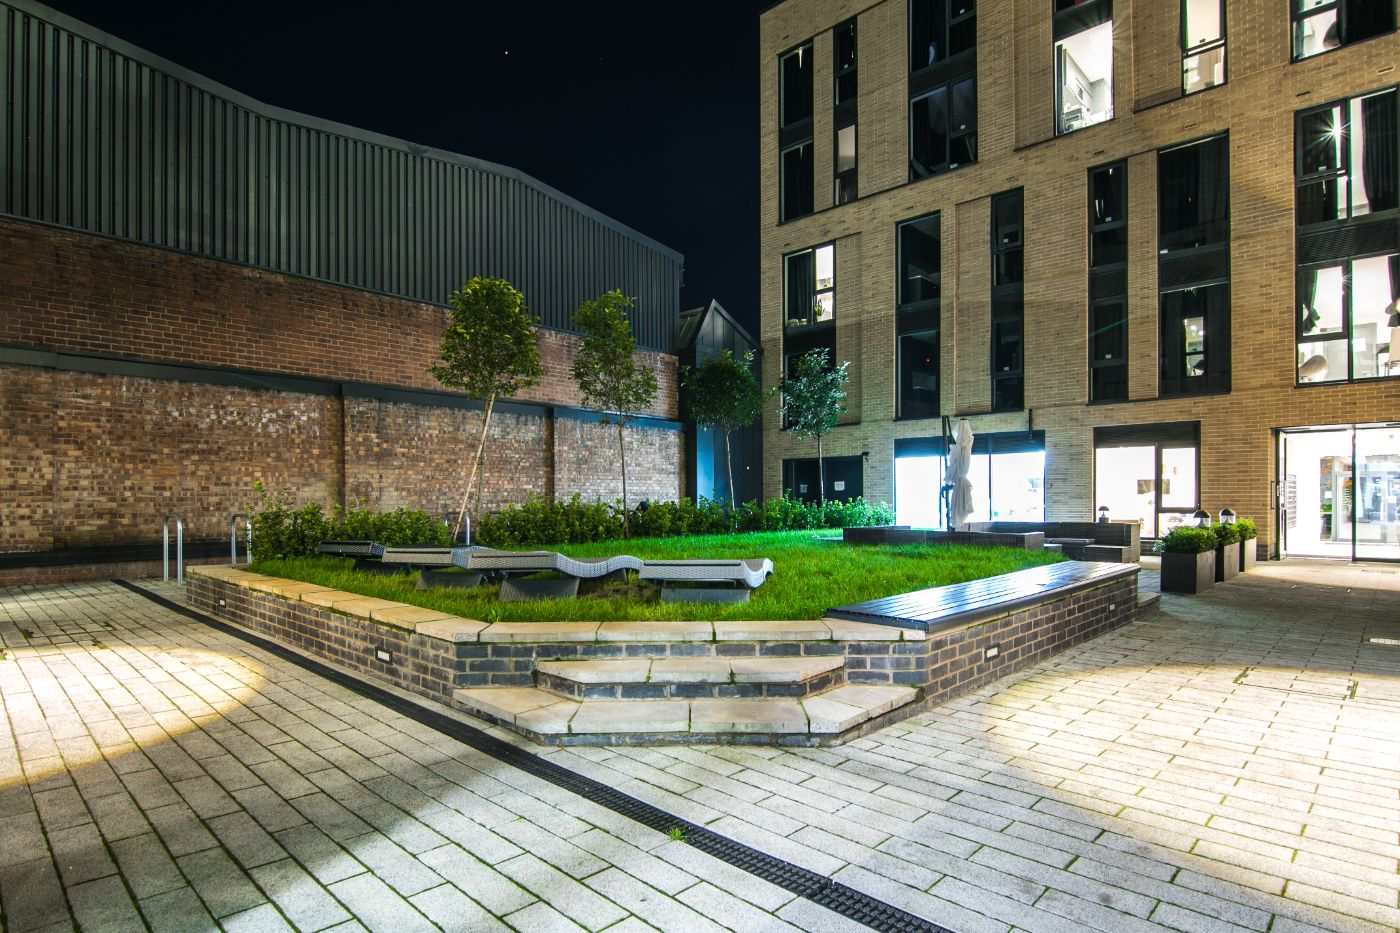 33 Parkside student accommodation courtyard